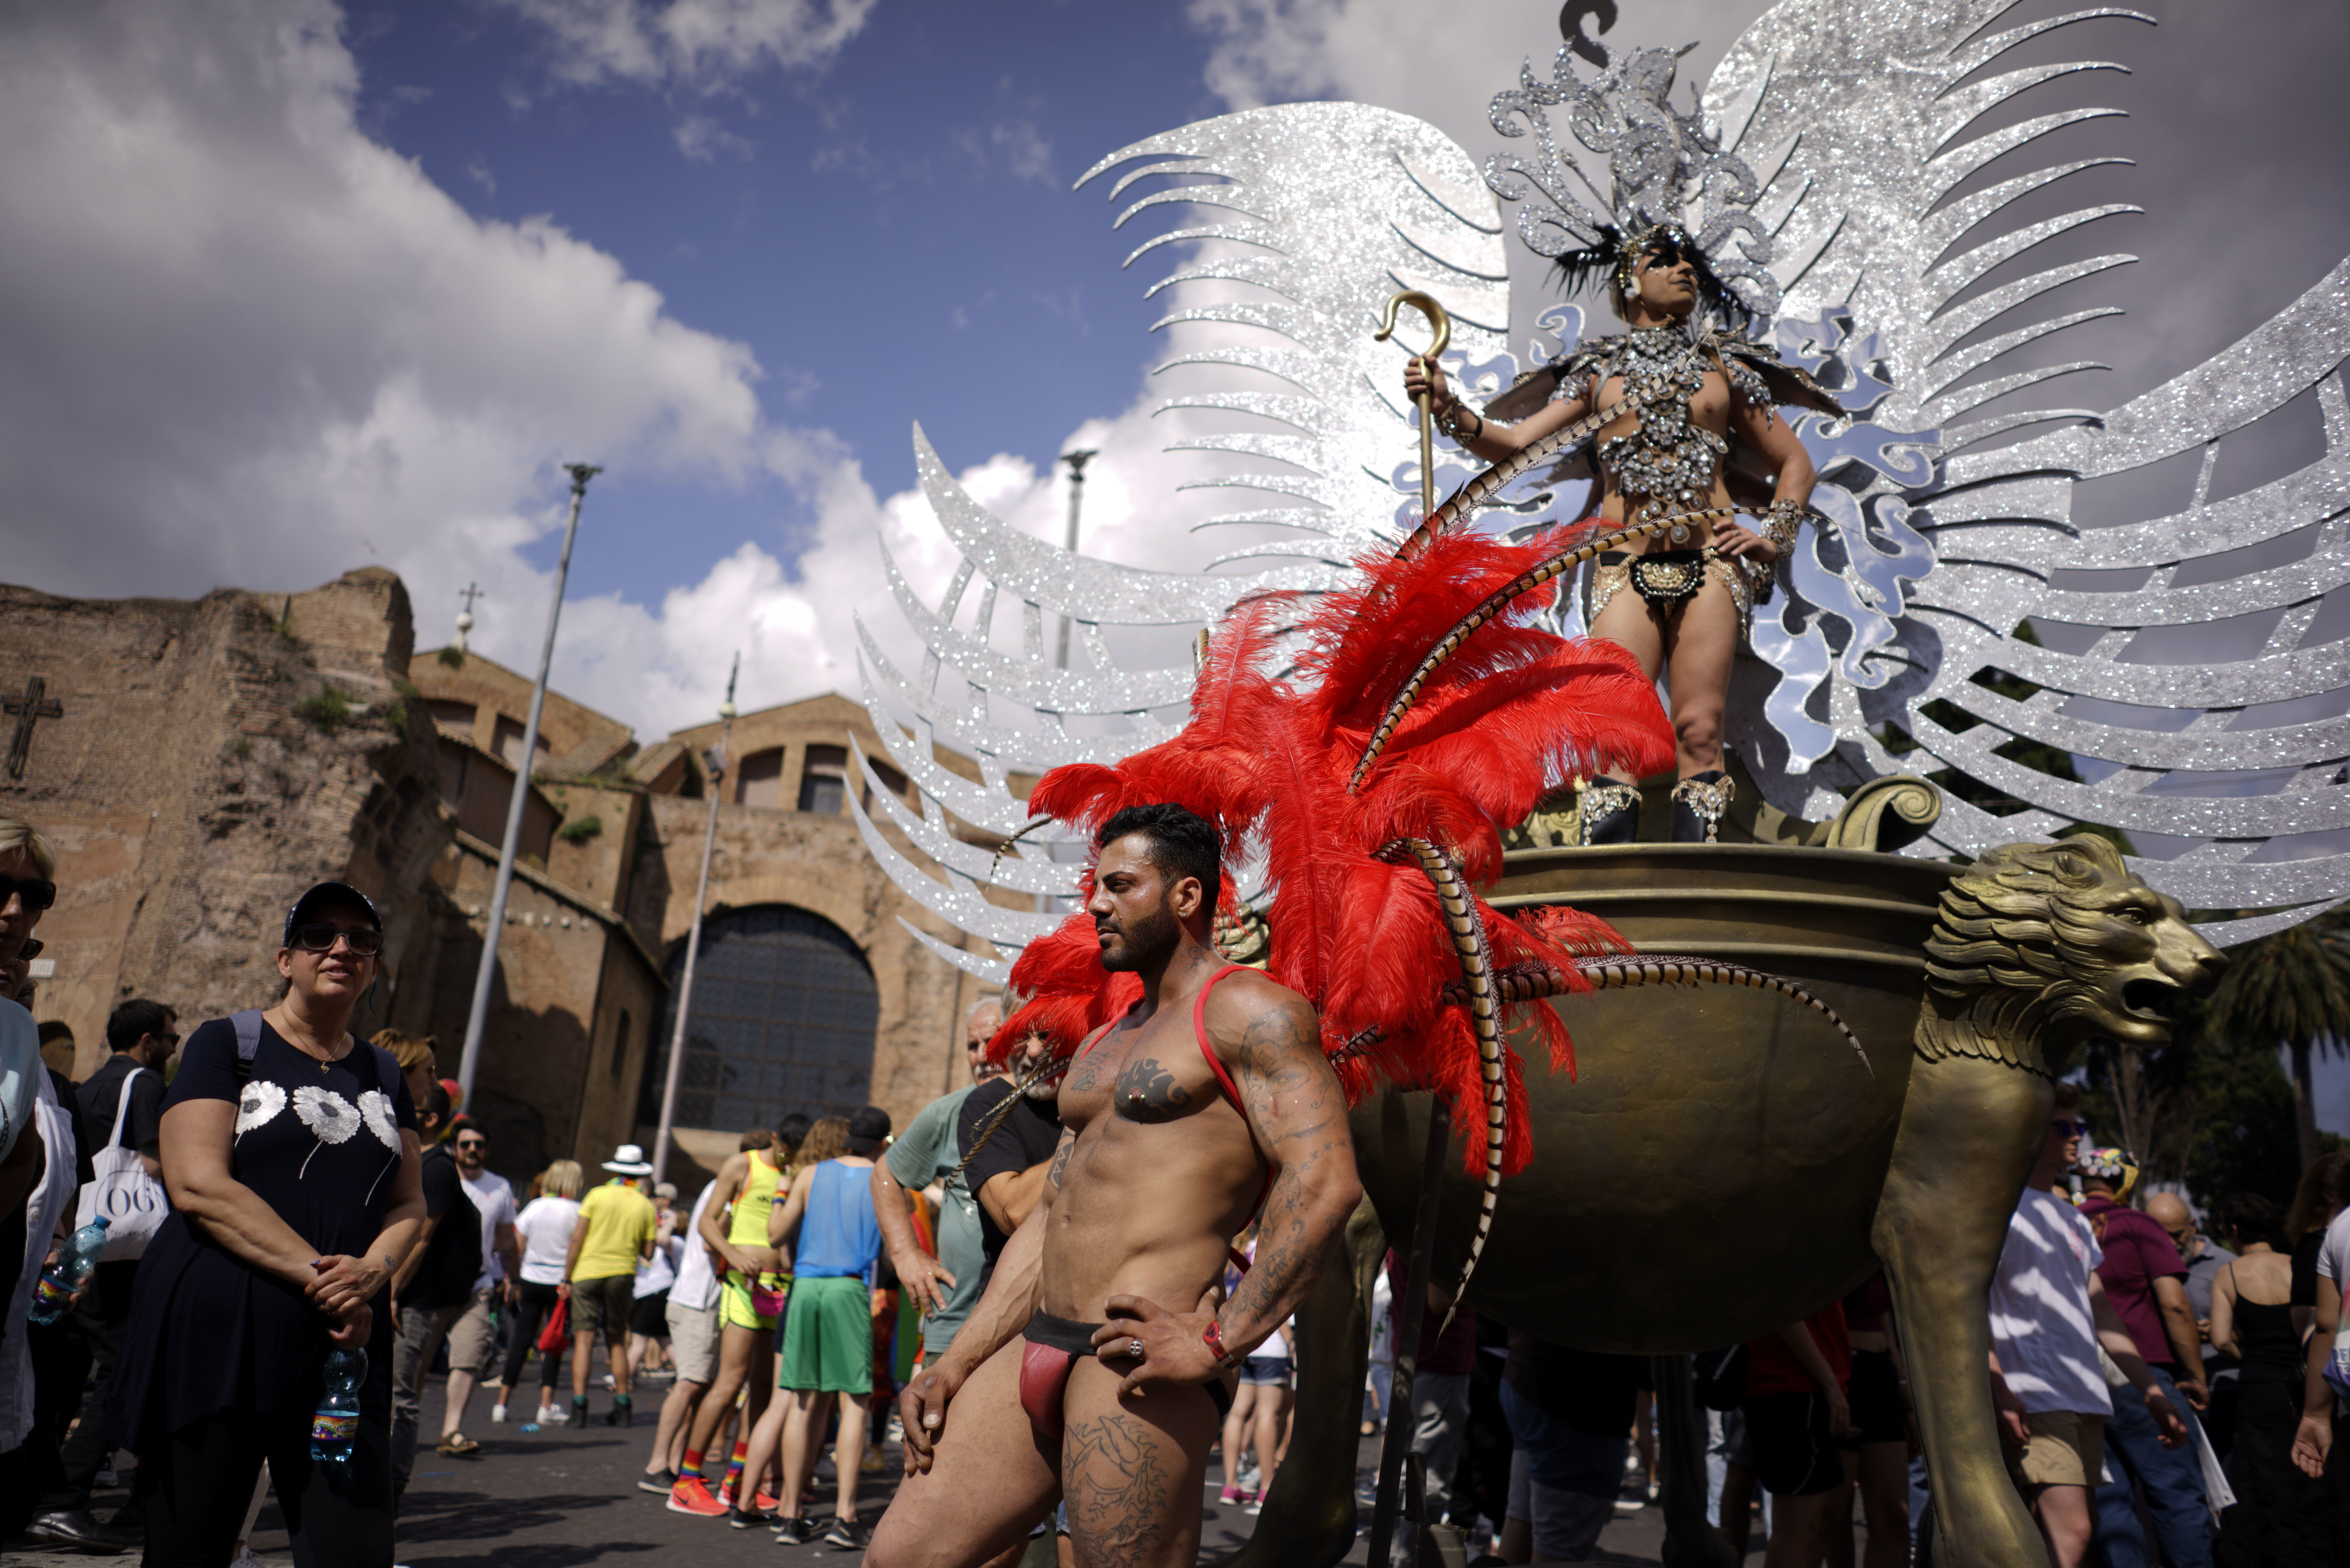 People take part in the annual gay pride parade in Rome, June 9, 2018.